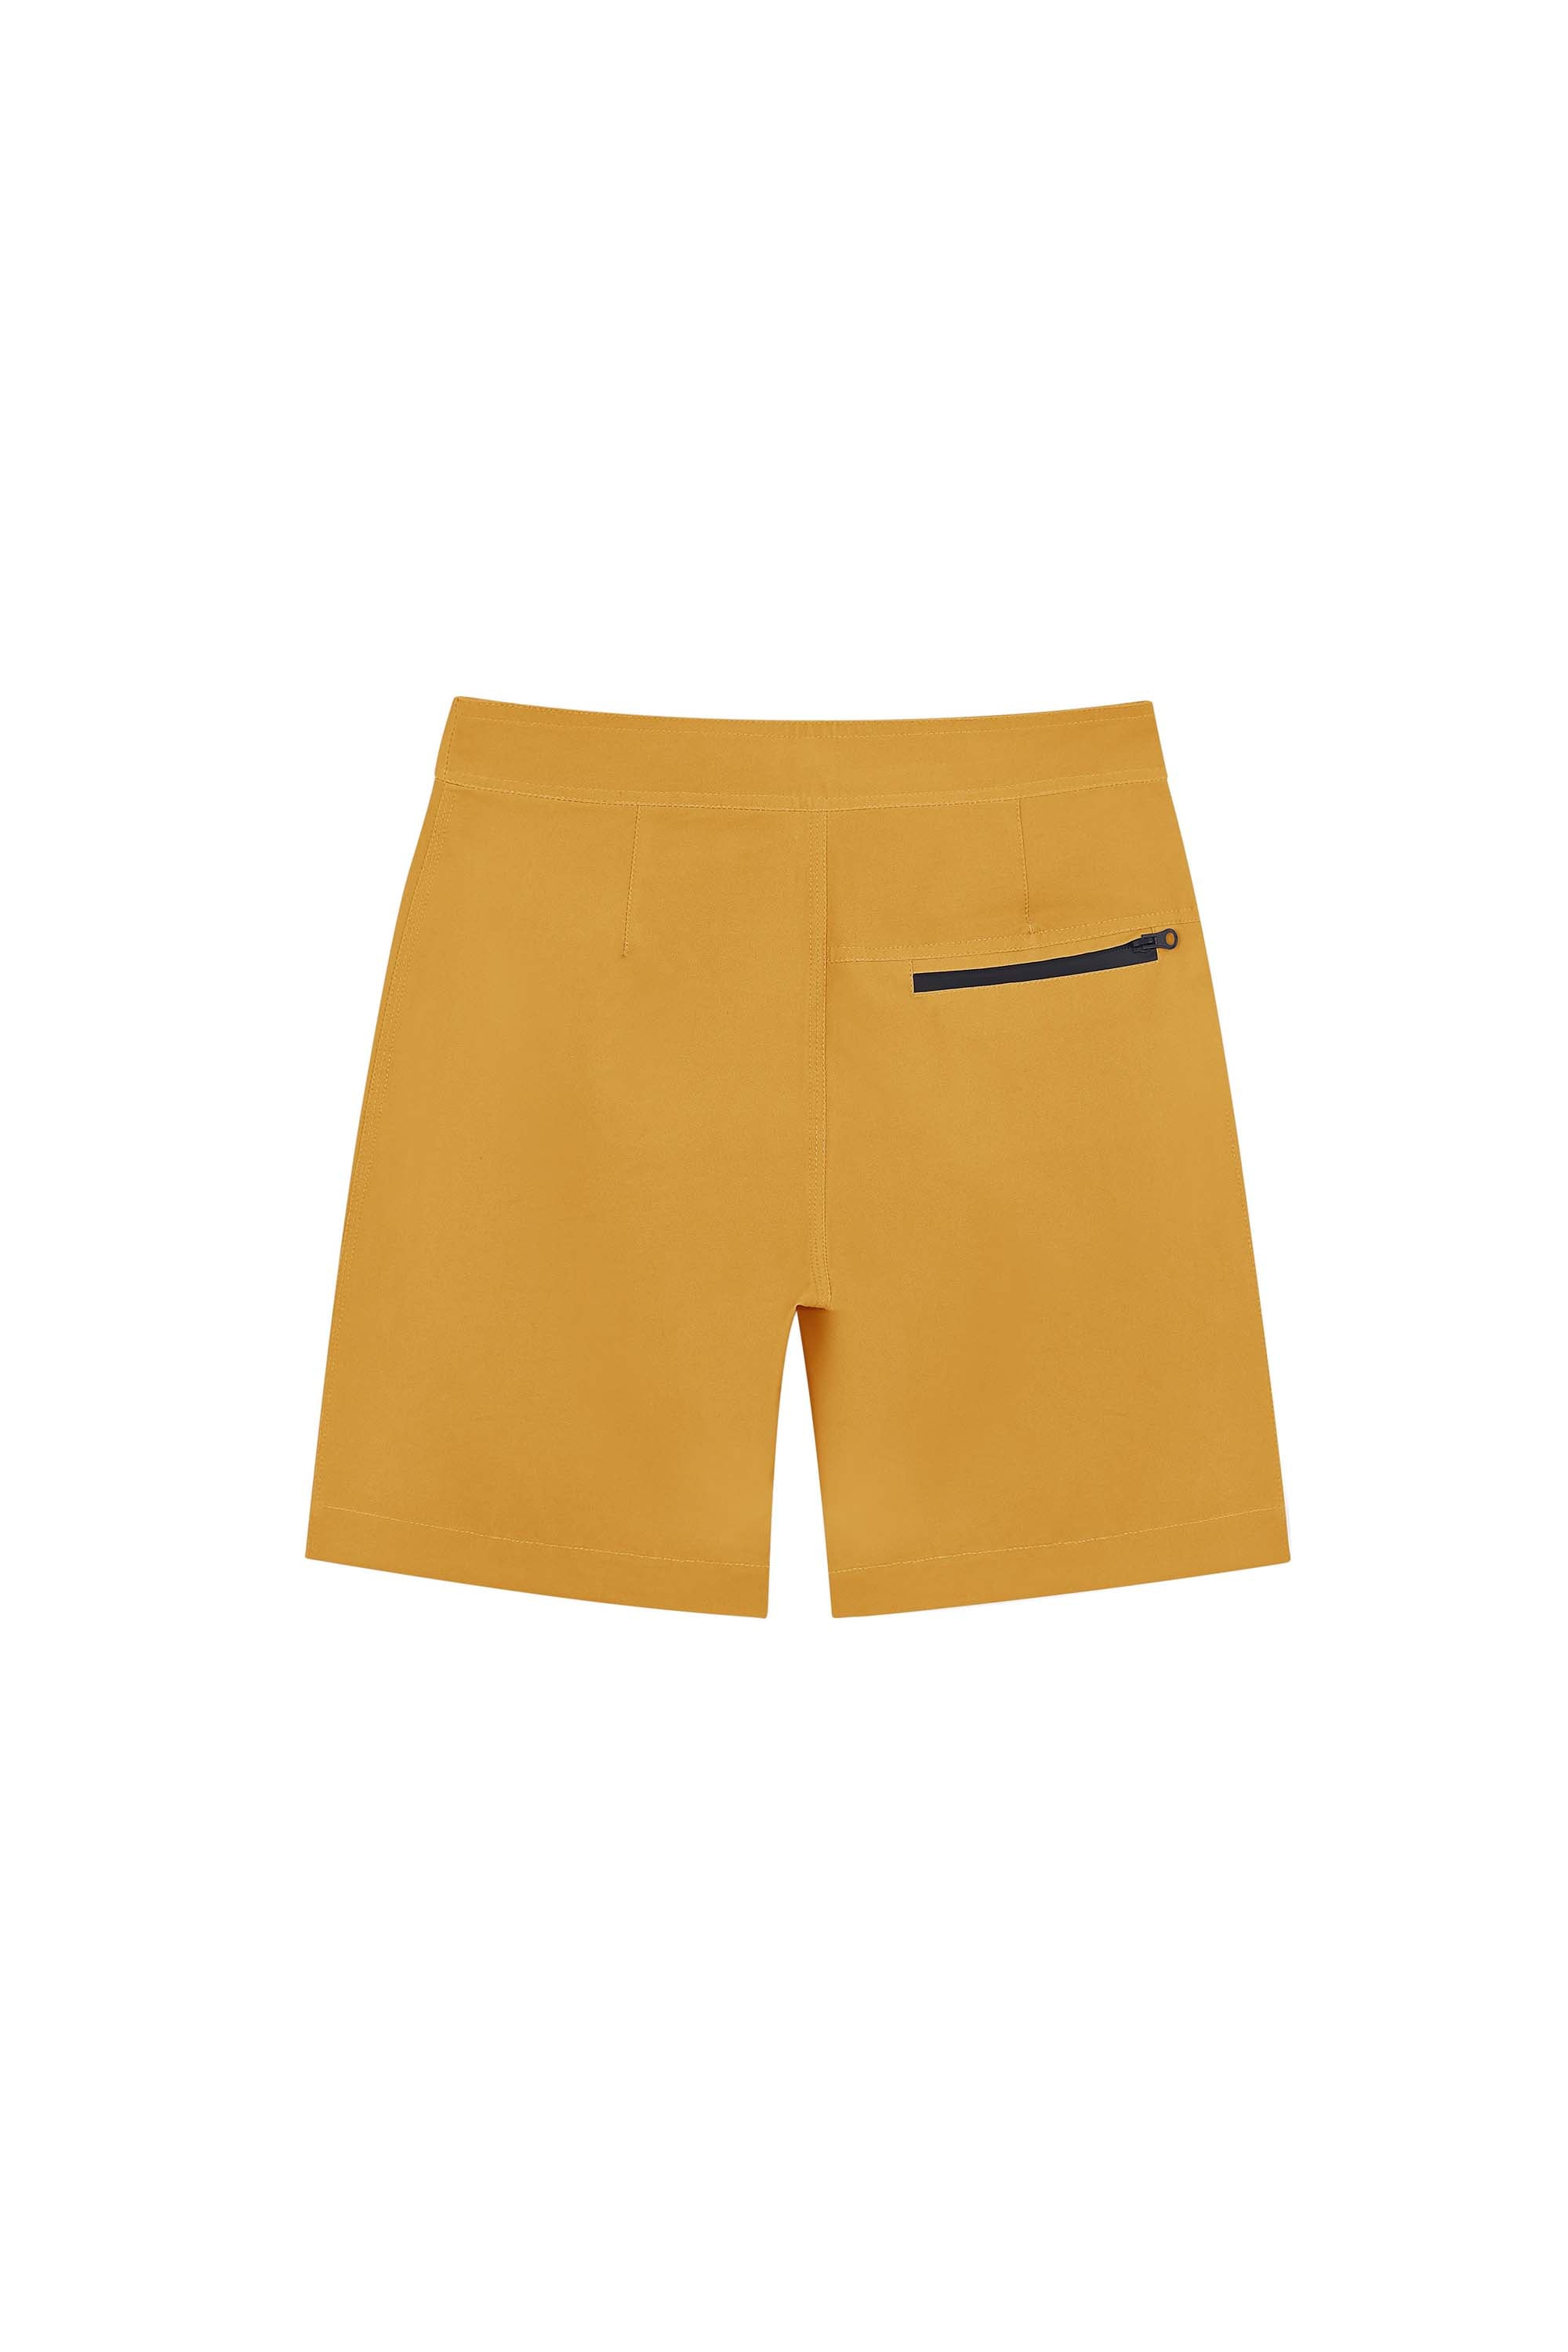 "Eddie Board Short 19"" - Mustard"